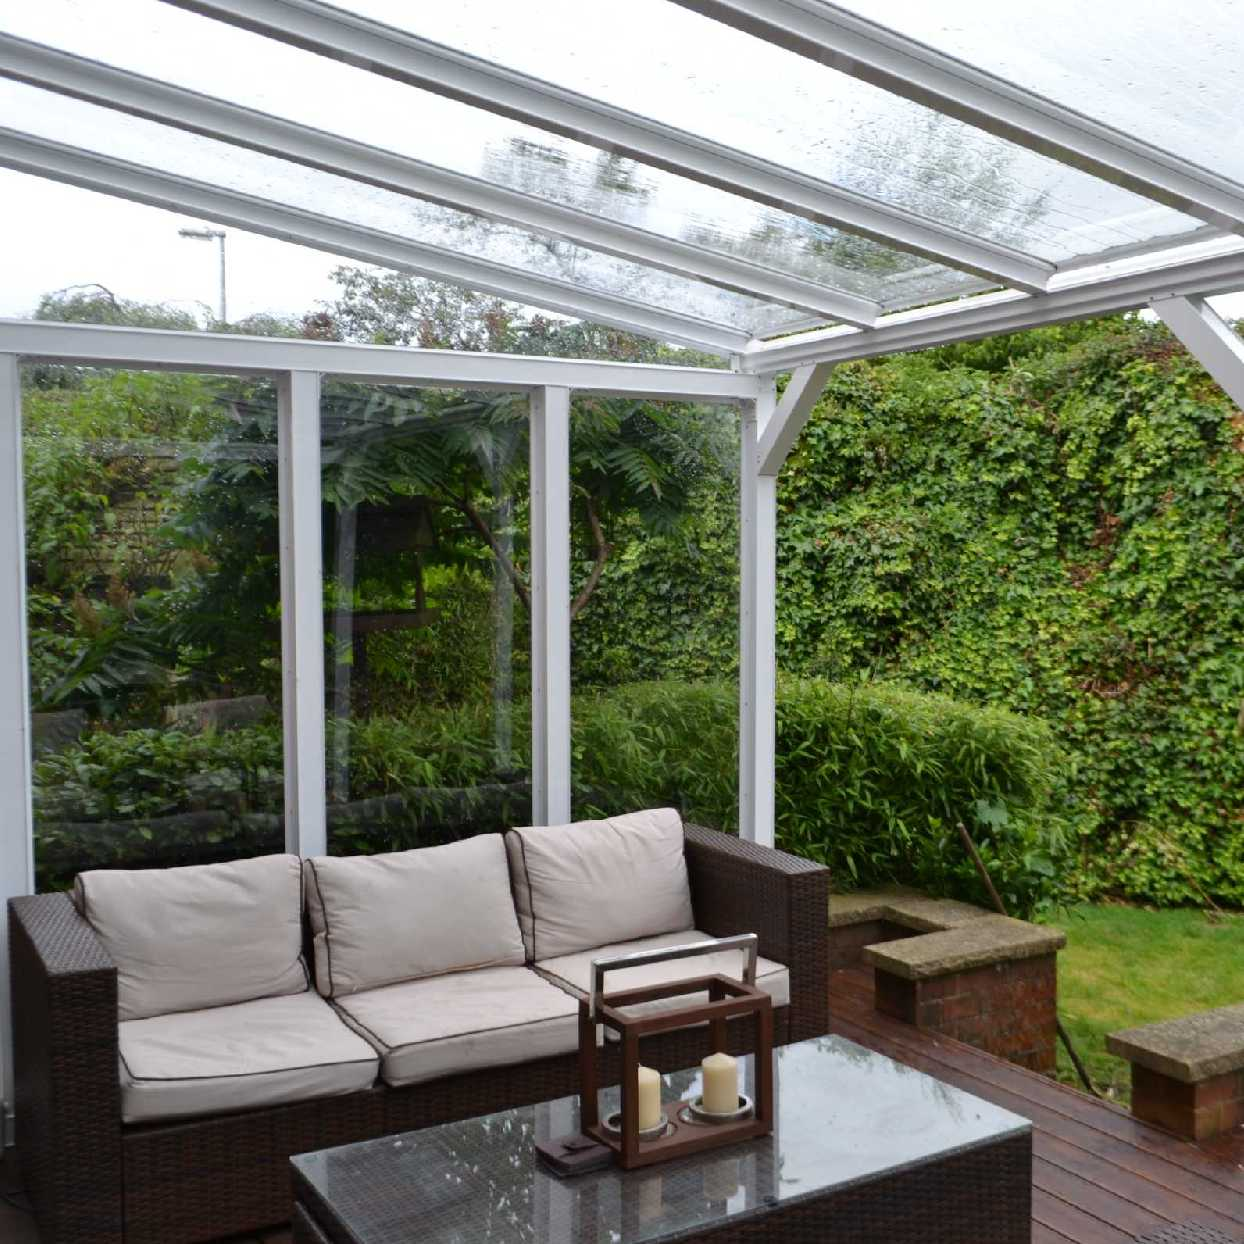 Omega Smart White Lean-To Canopy with 6mm Glass Clear Plate Polycarbonate Glazing - 7.7m (W) x 1.5m (P), (4) Supporting Posts